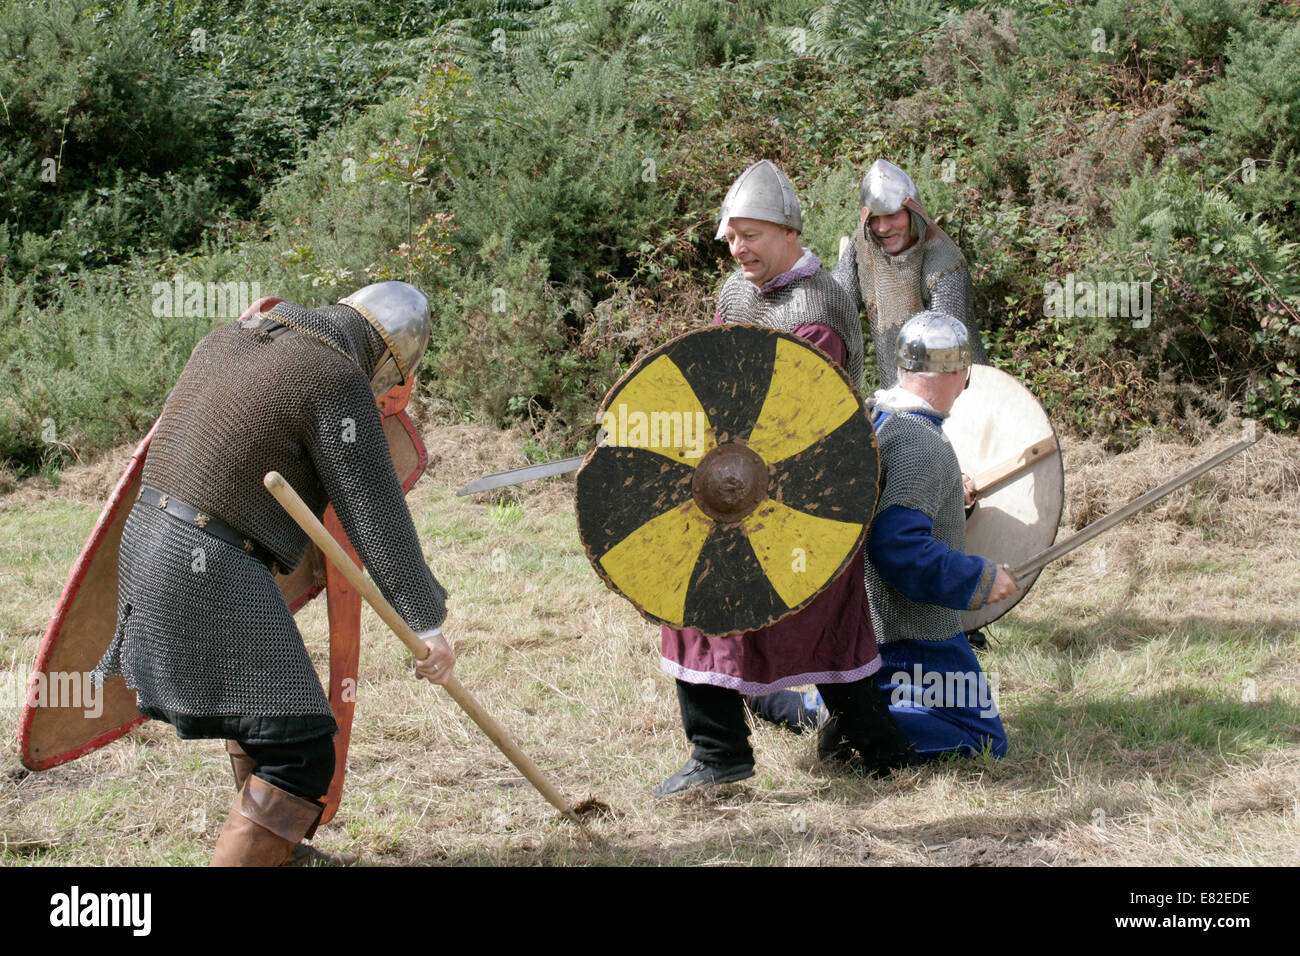 medieval soldiers fighting - Stock Image